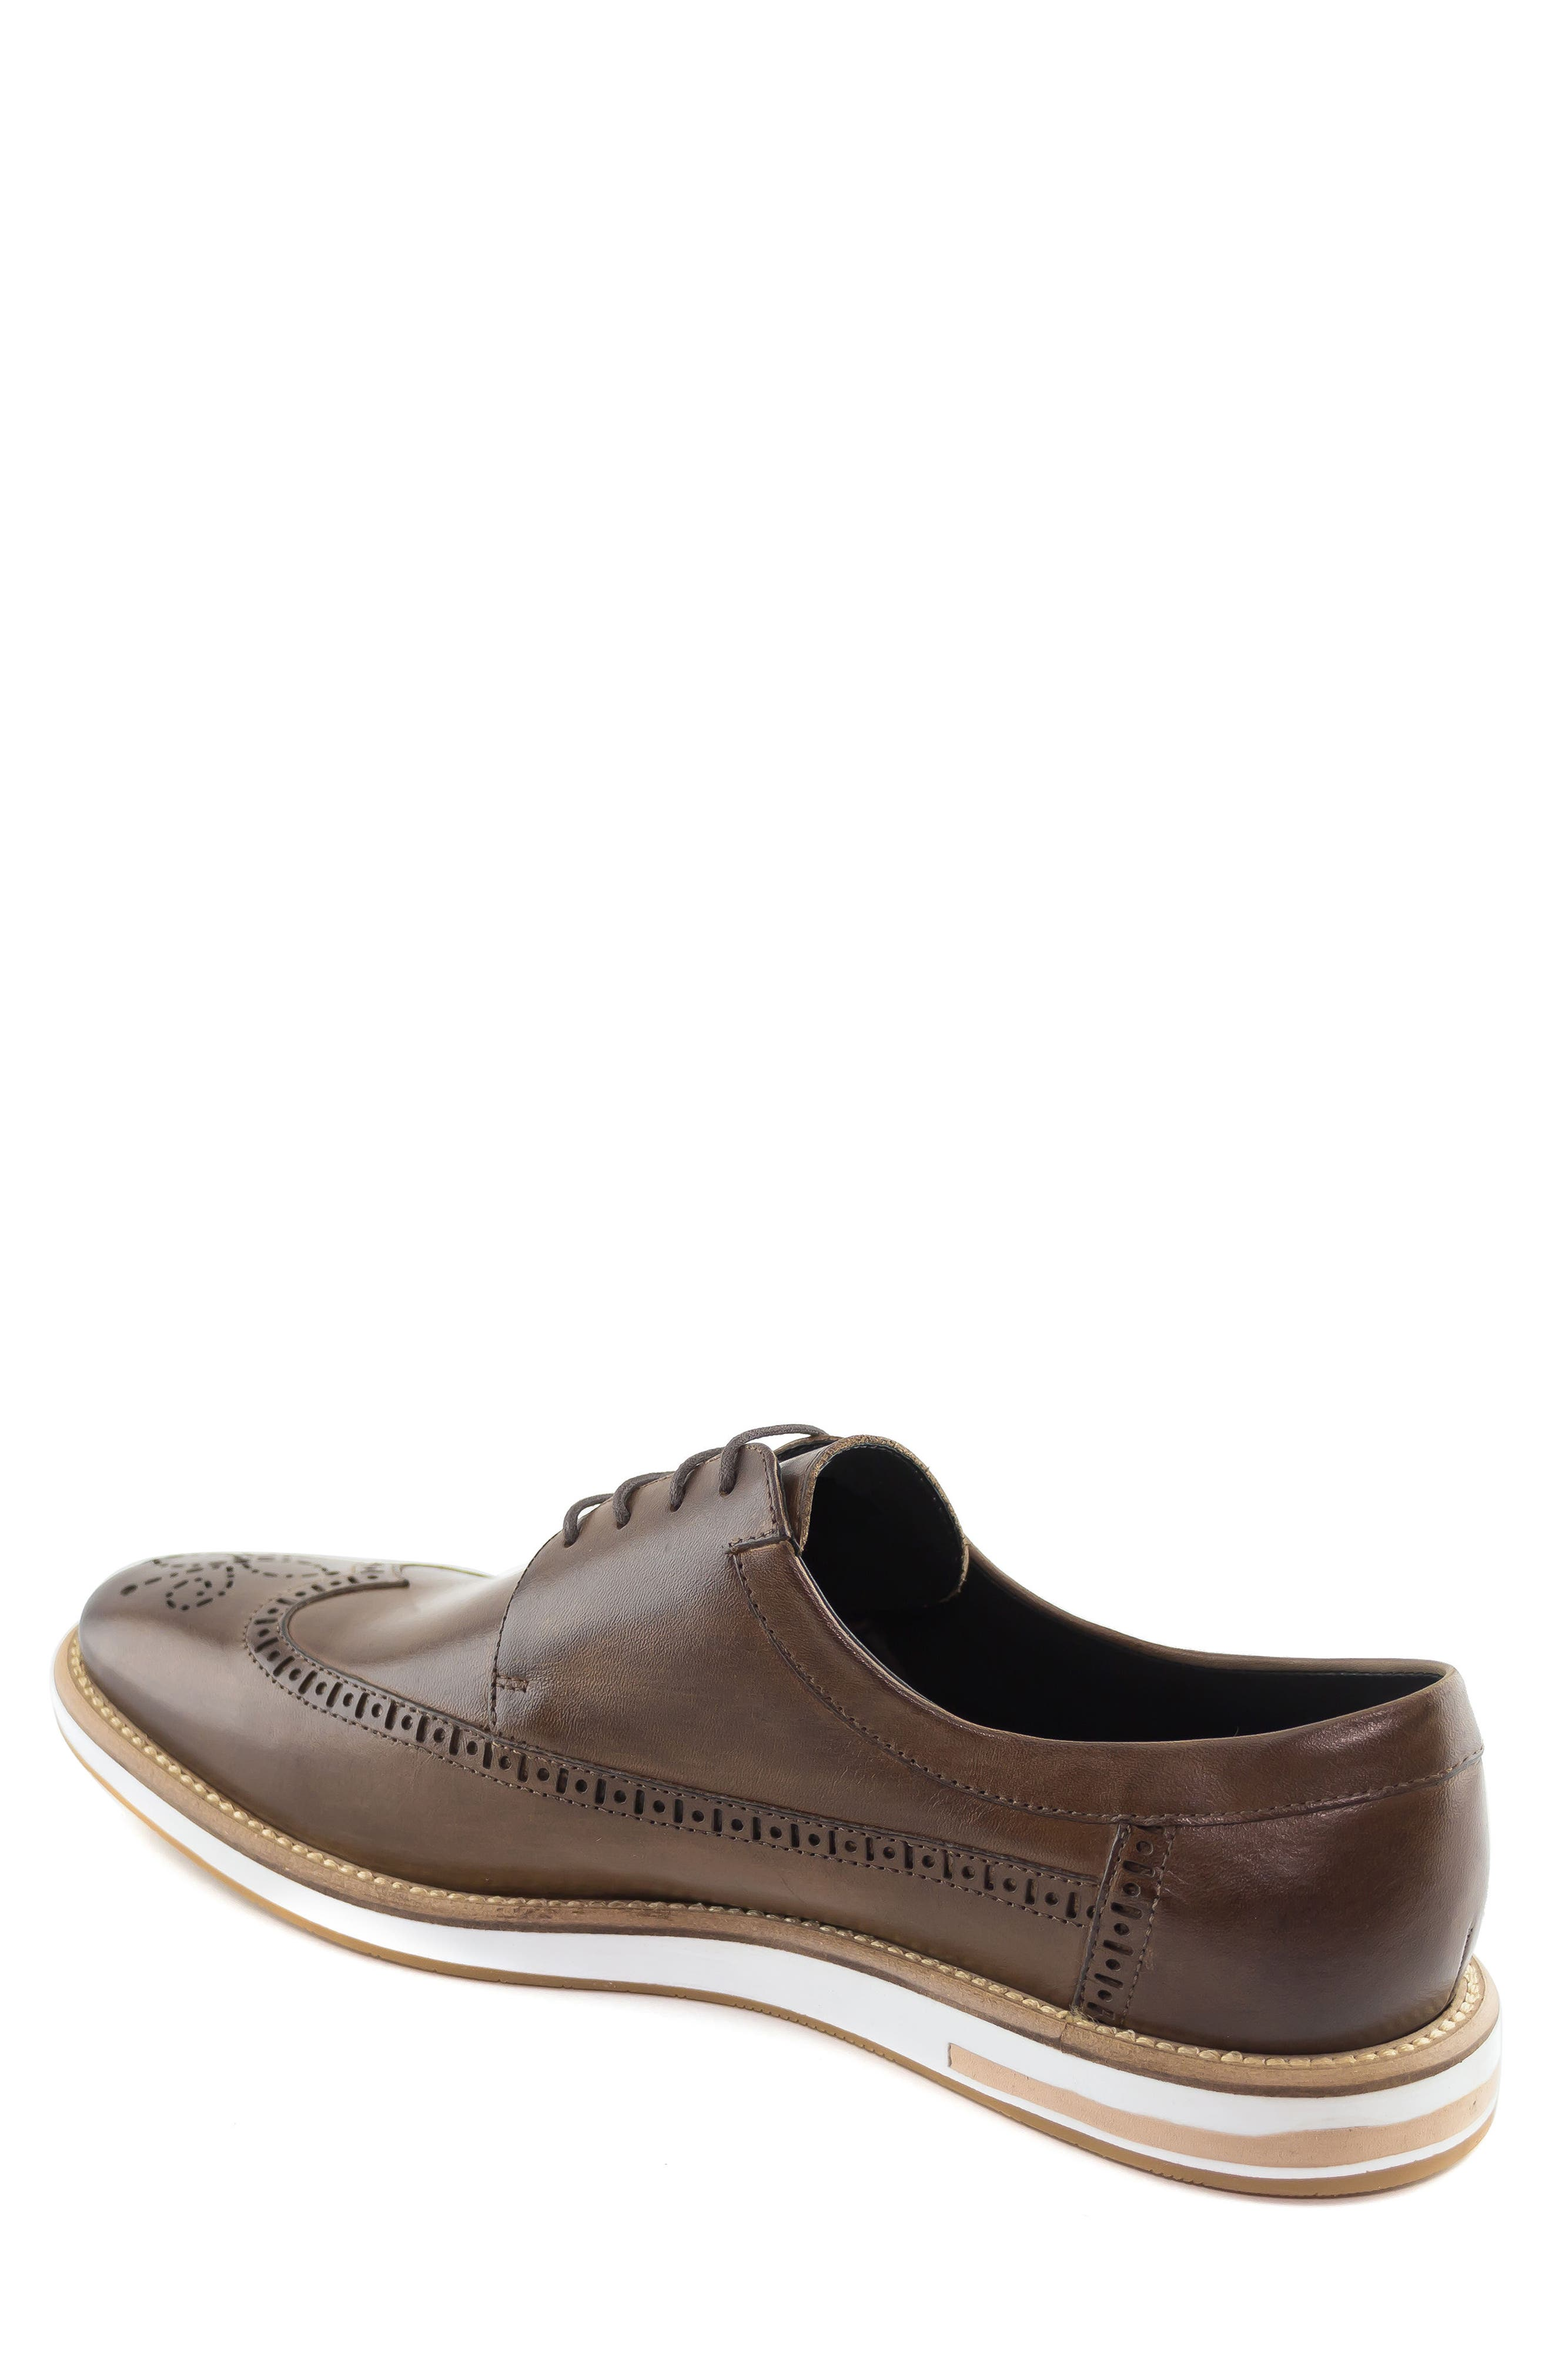 Marc Joseph New Yrok NYC Wingtip,                             Alternate thumbnail 4, color,